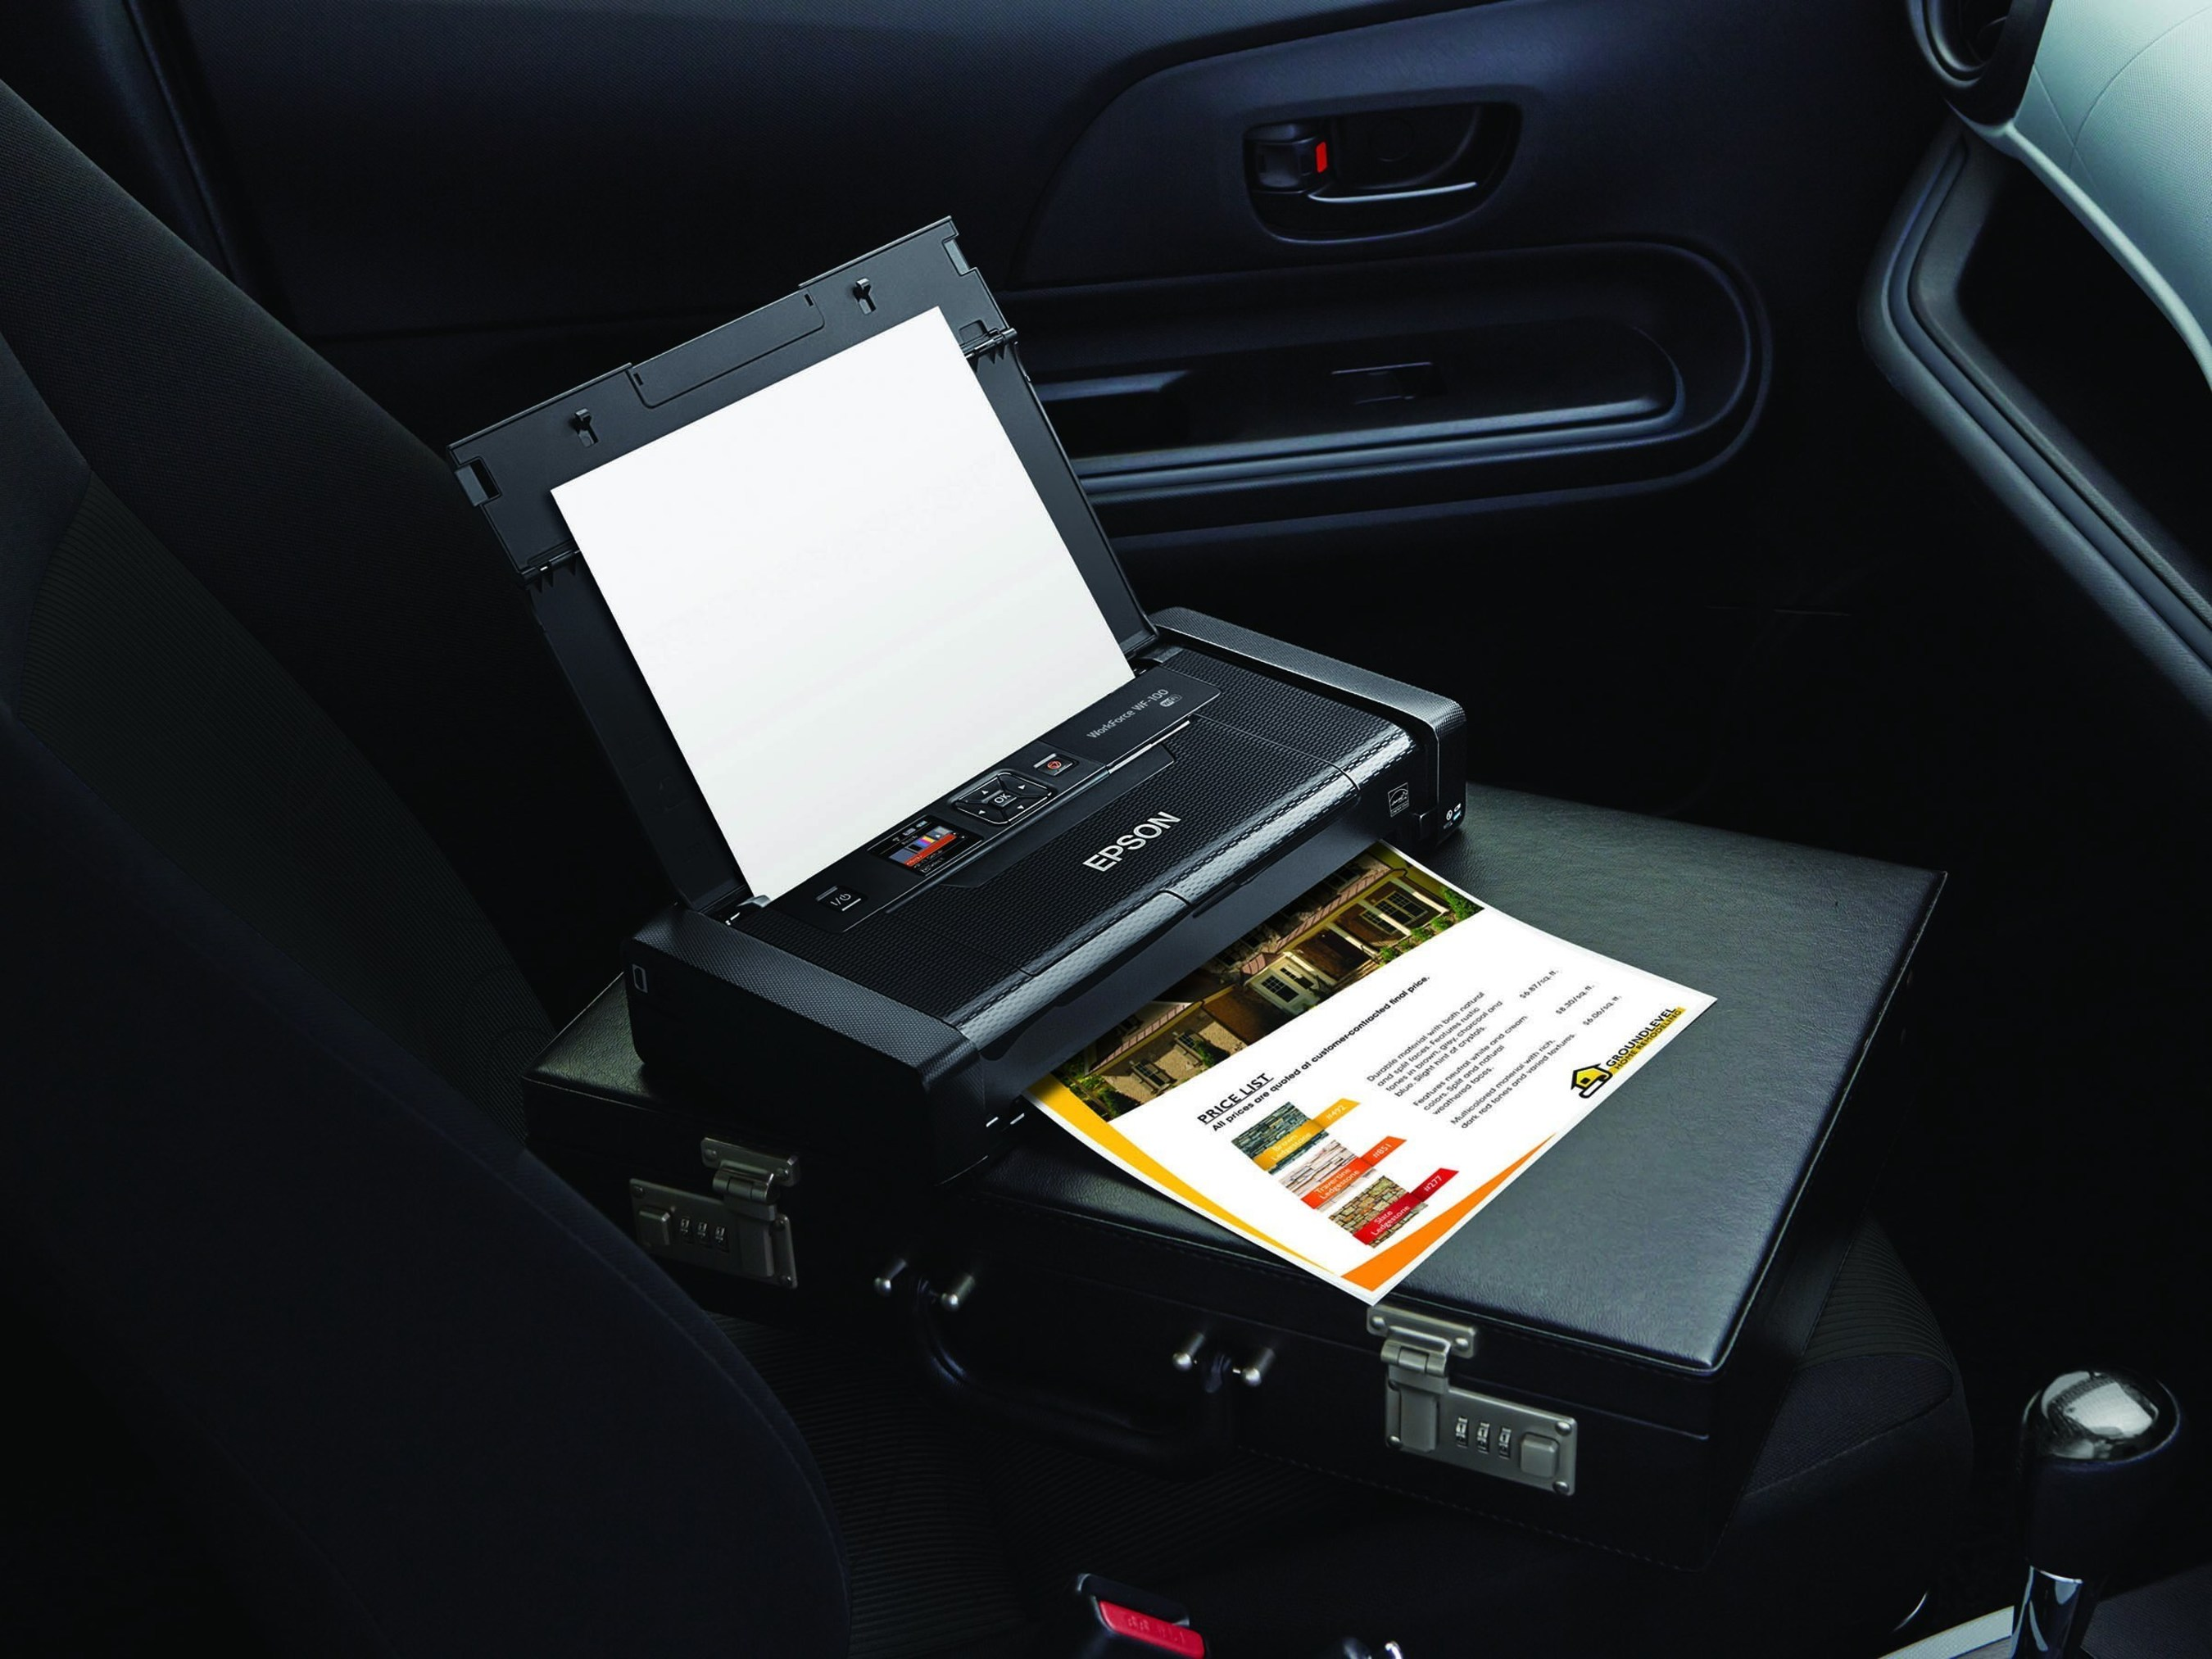 The Epson WorkForce WF-100, the world's smallest and lightest mobile printer, designed for professionals on-the-go.